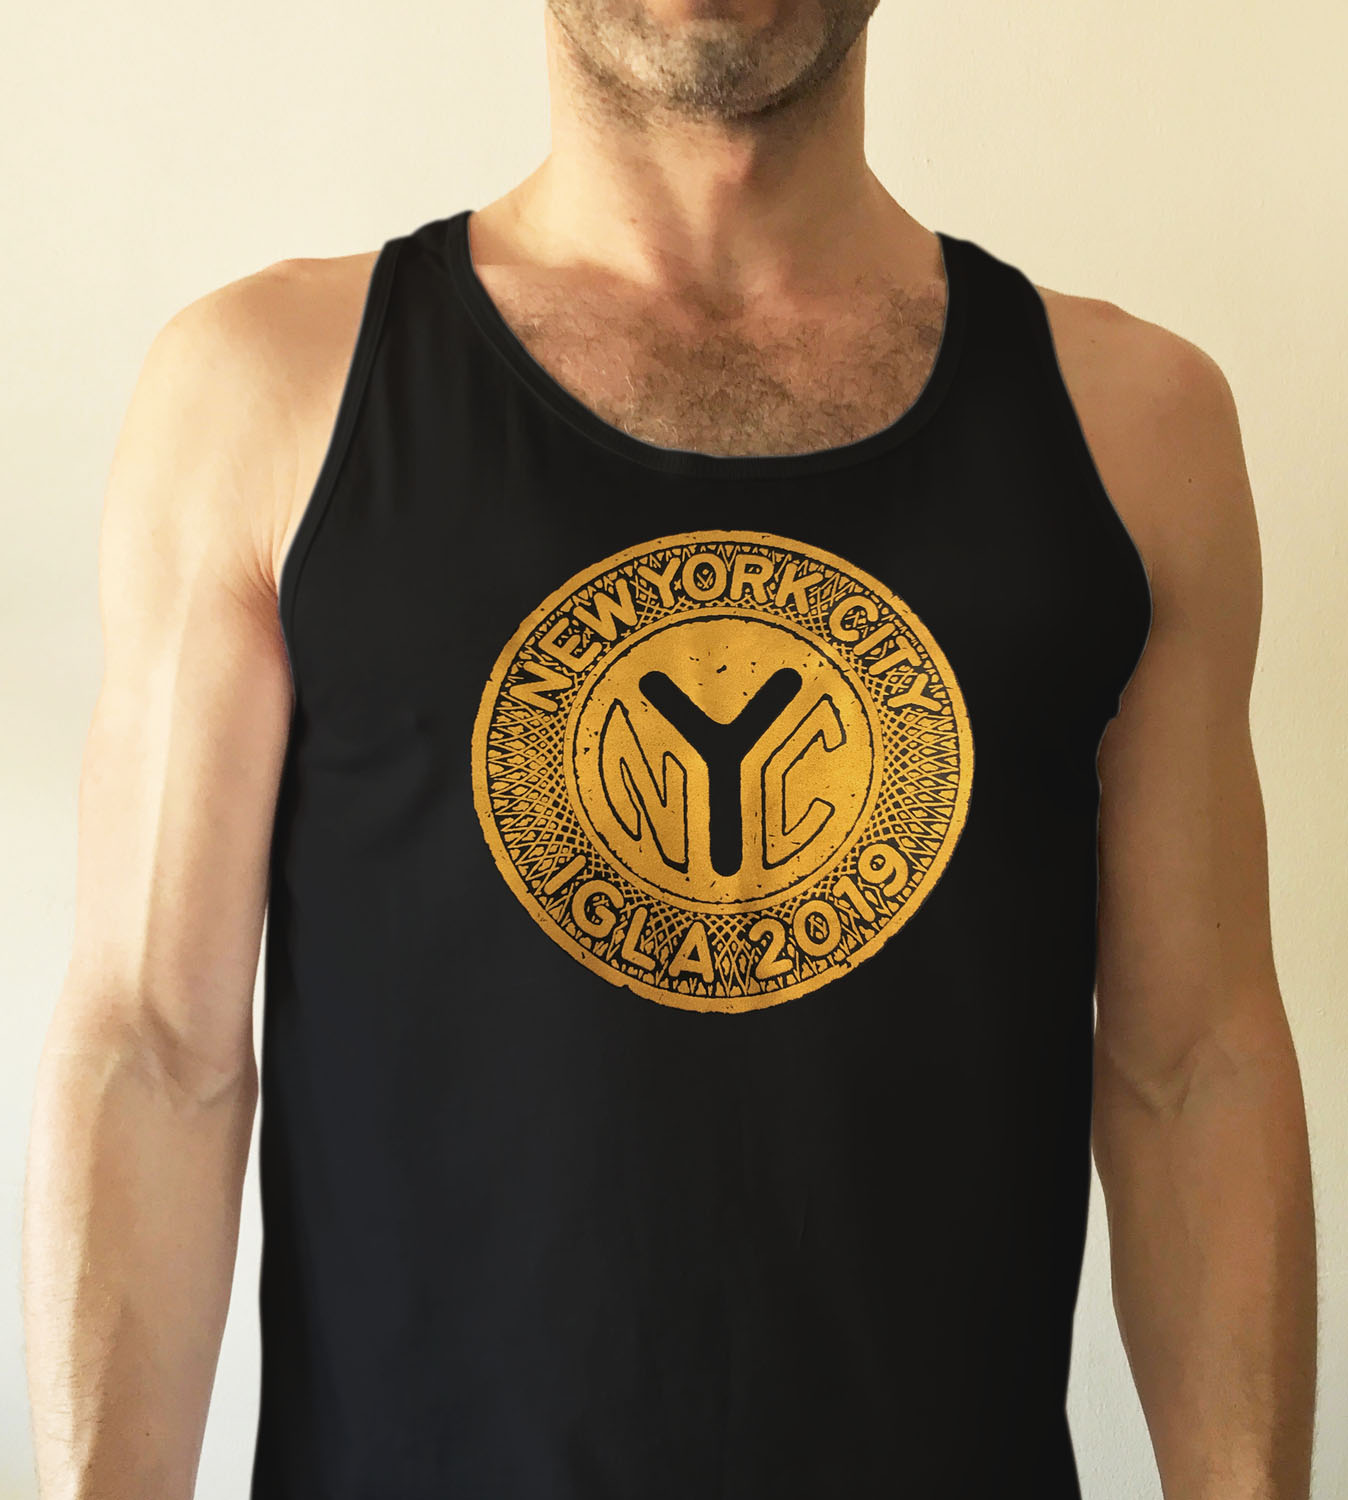 Unisex black fitted tank top with vintage metallic gold token  $16